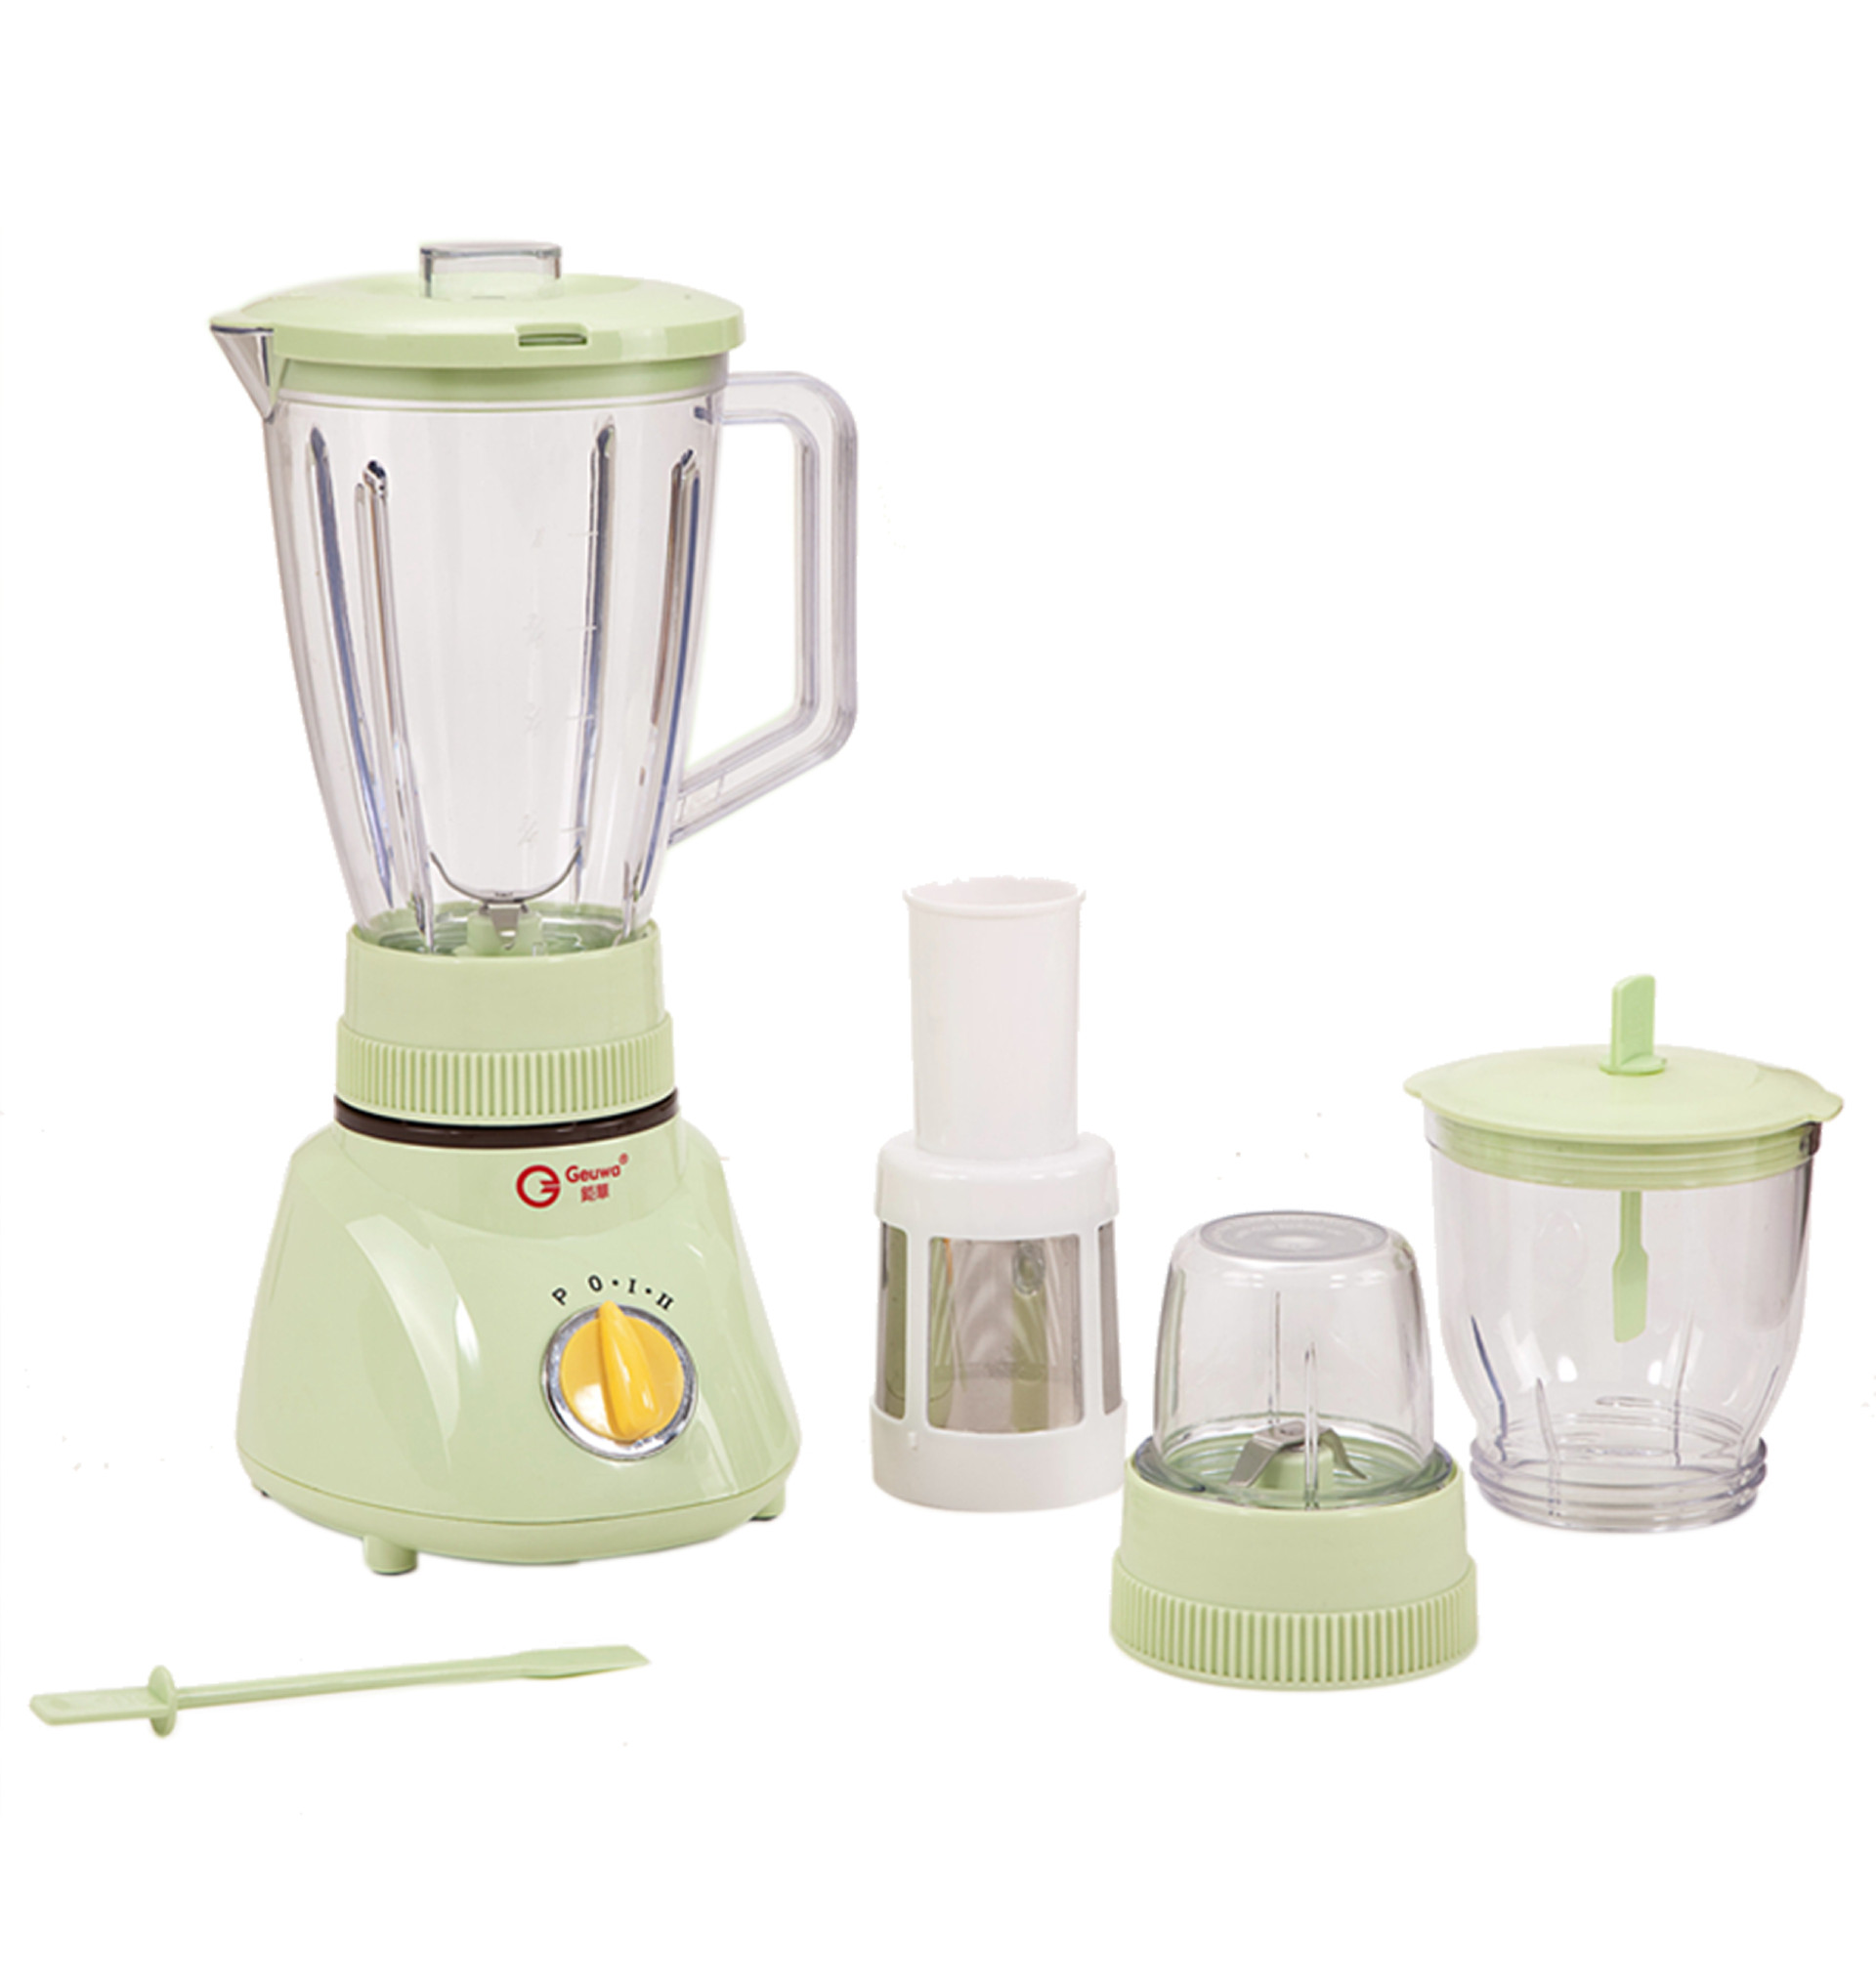 3 in 1 300W 1.6L Capacity Electric Food Processor Blender (K